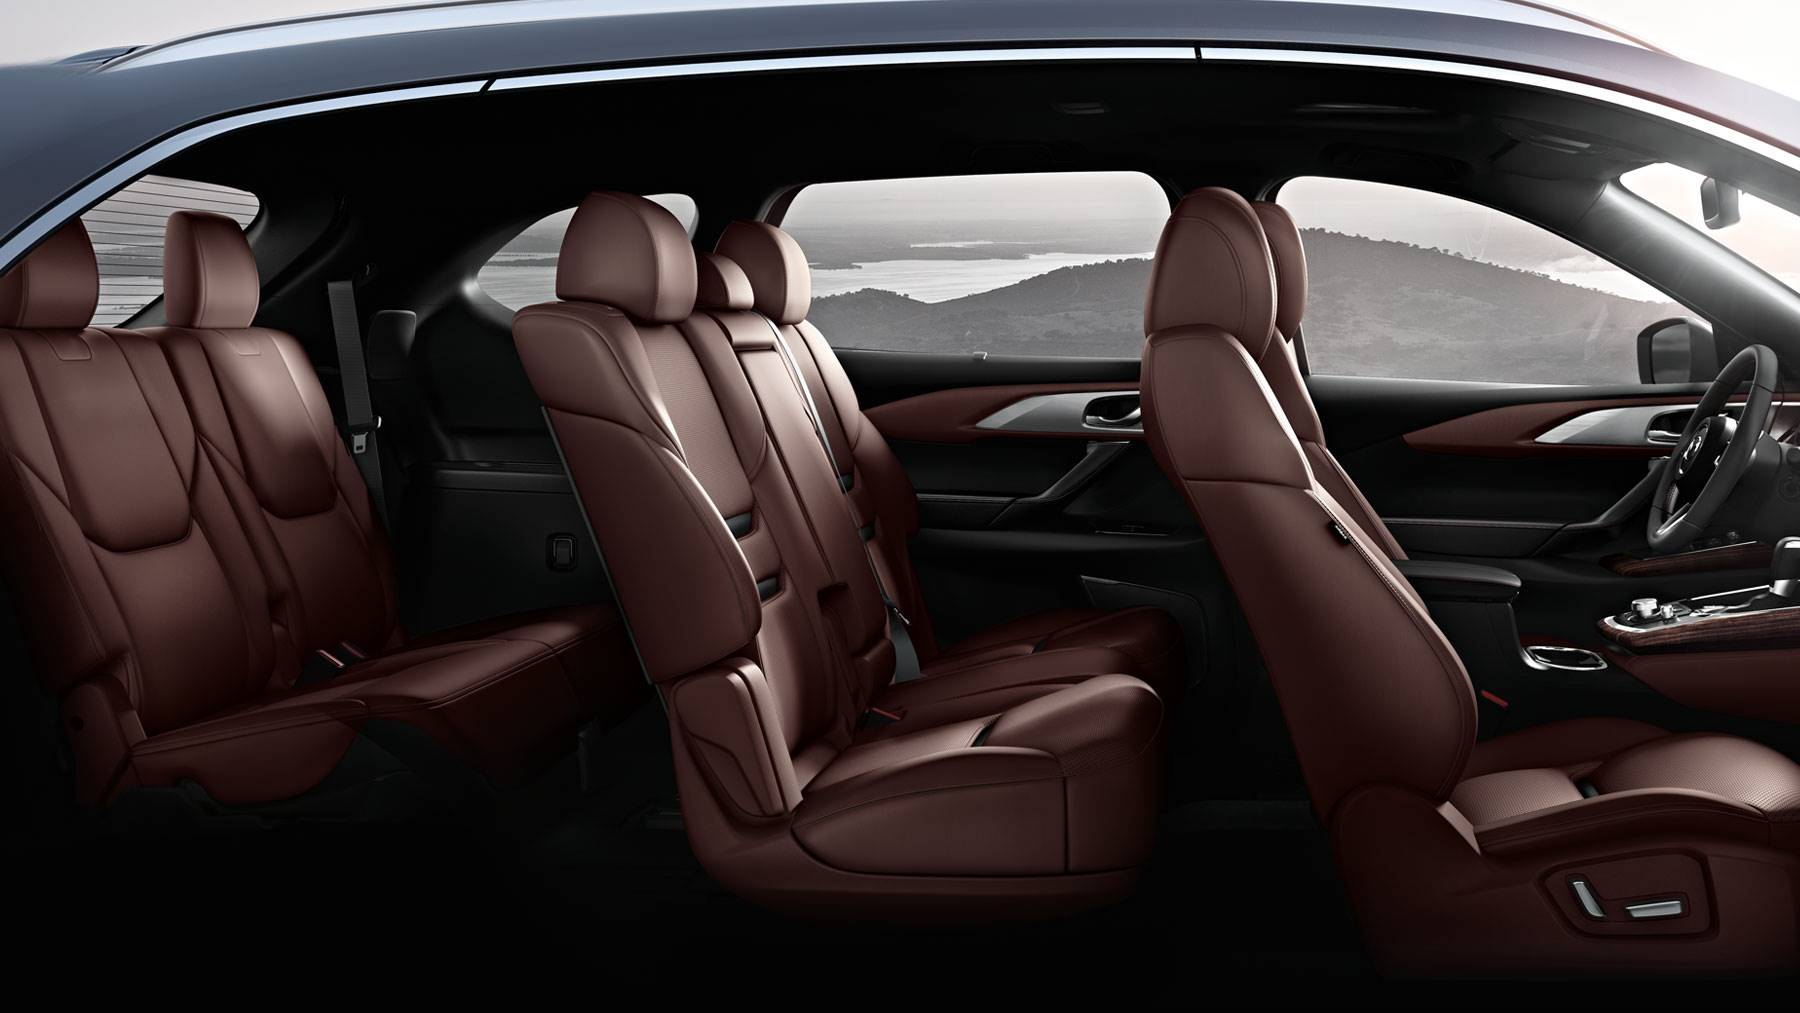 2019 Mazda CX-9 Seating